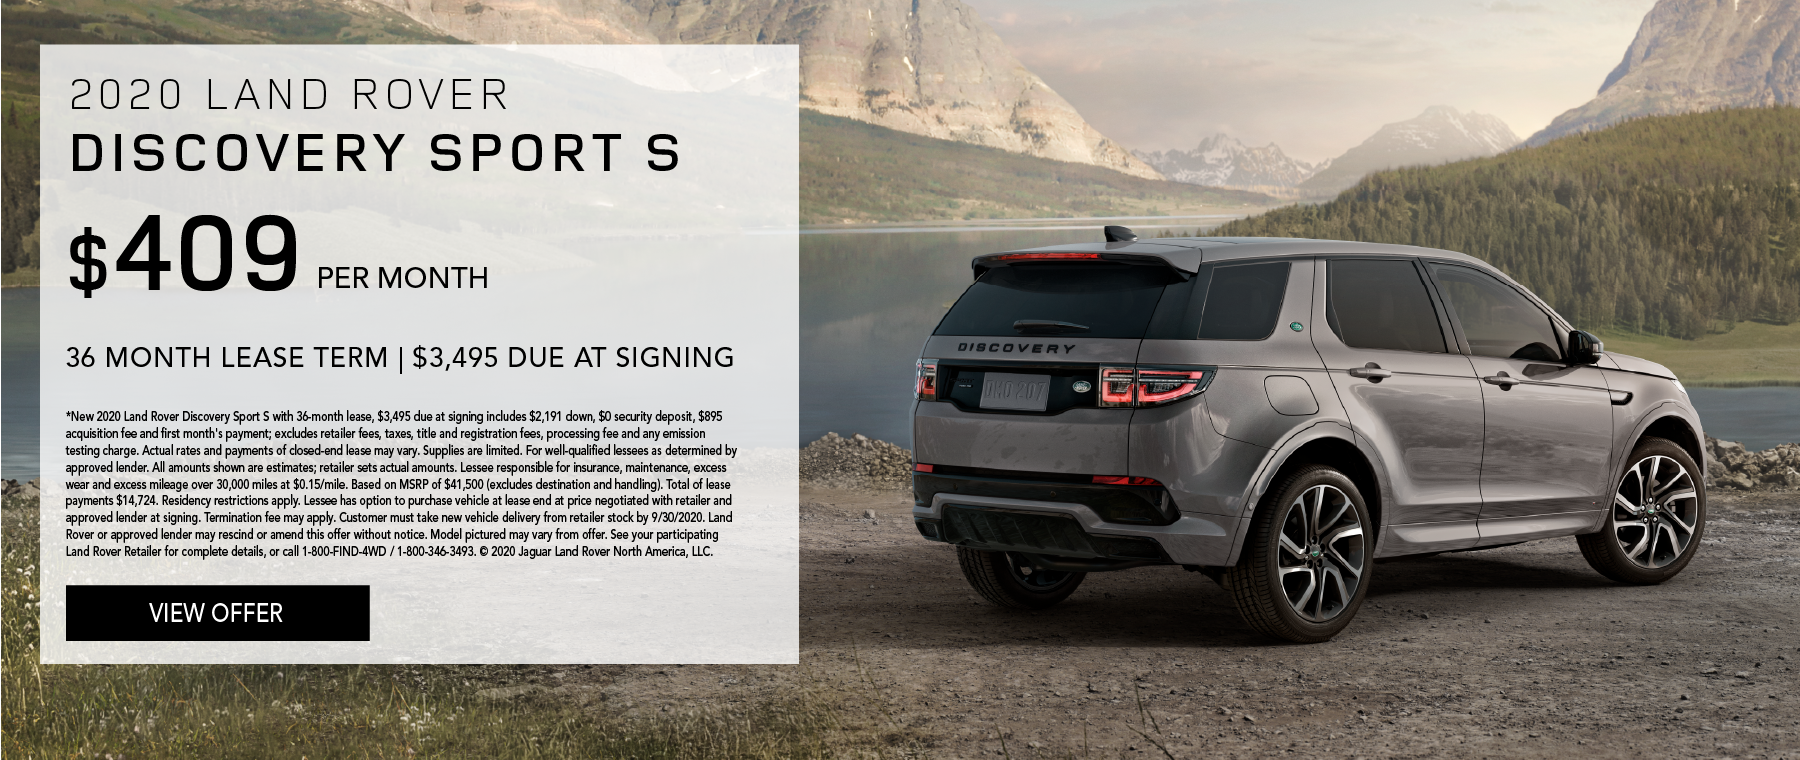 2020 LAND ROVER DISCOVERY SPORT S. $409 PER MONTH. 36 MONTH LEASE TERM. $3,495 CASH DUE AT SIGNING. $0 SECURITY DEPOSIT. 10,000 MILES PER YEAR. EXCLUDES RETAILER FEES, TAXES, TITLE AND REGISTRATION FEES, PROCESSING FEE AND ANY EMISSION TESTING CHARGE. ENDS 9/30/2020.